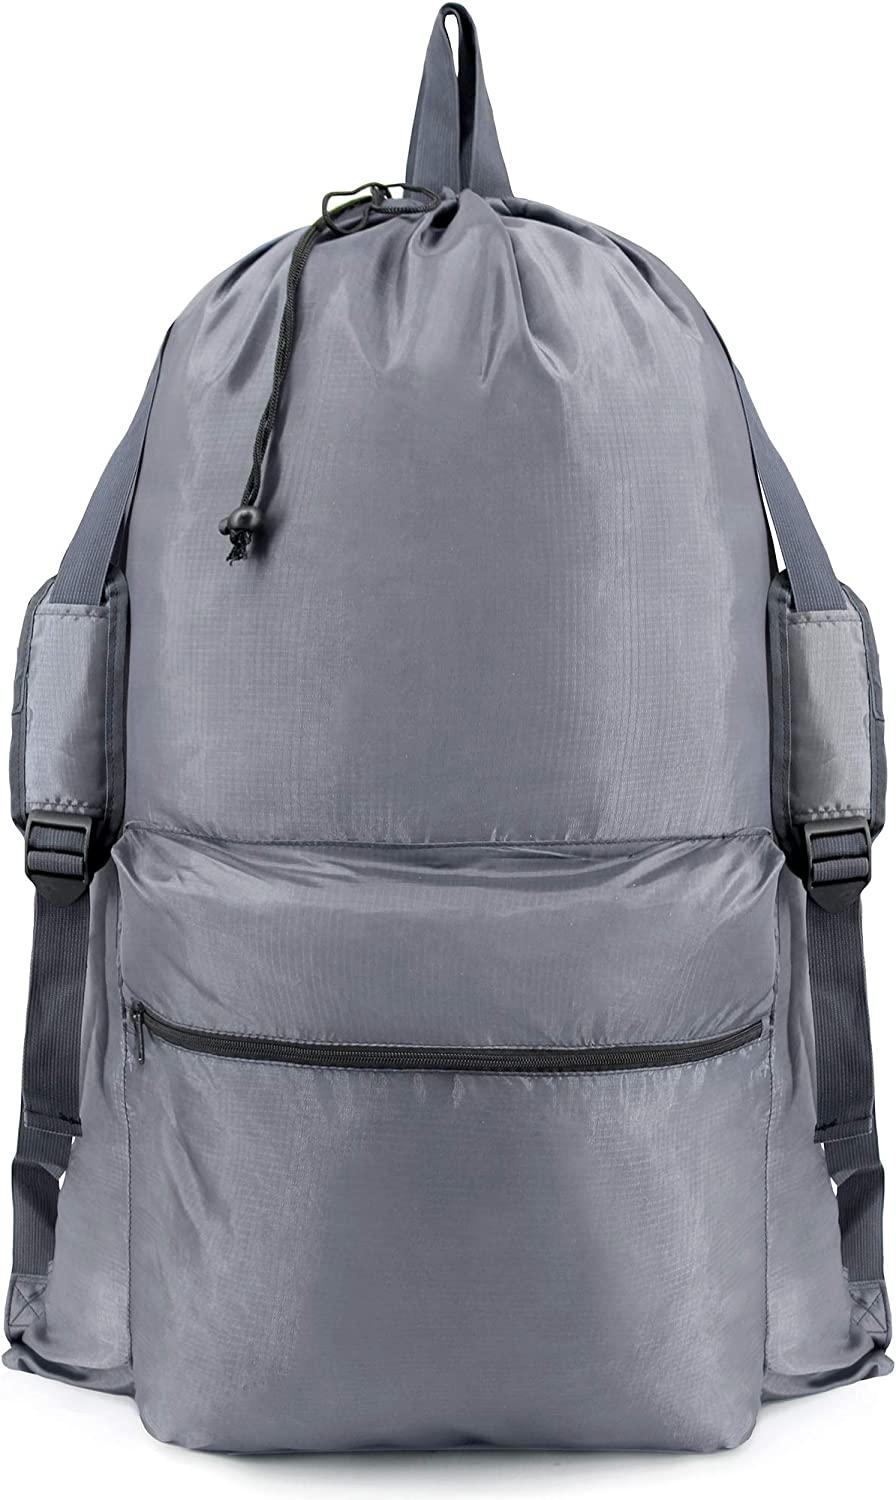 BeeGreen Laundry Bag Backpack with Zipper W24H36 Large College Laundry Bag with Shoulder Strap and Handles Laundry Tote for Dorm Camp Men Women Waterproof Machine Washable Gray